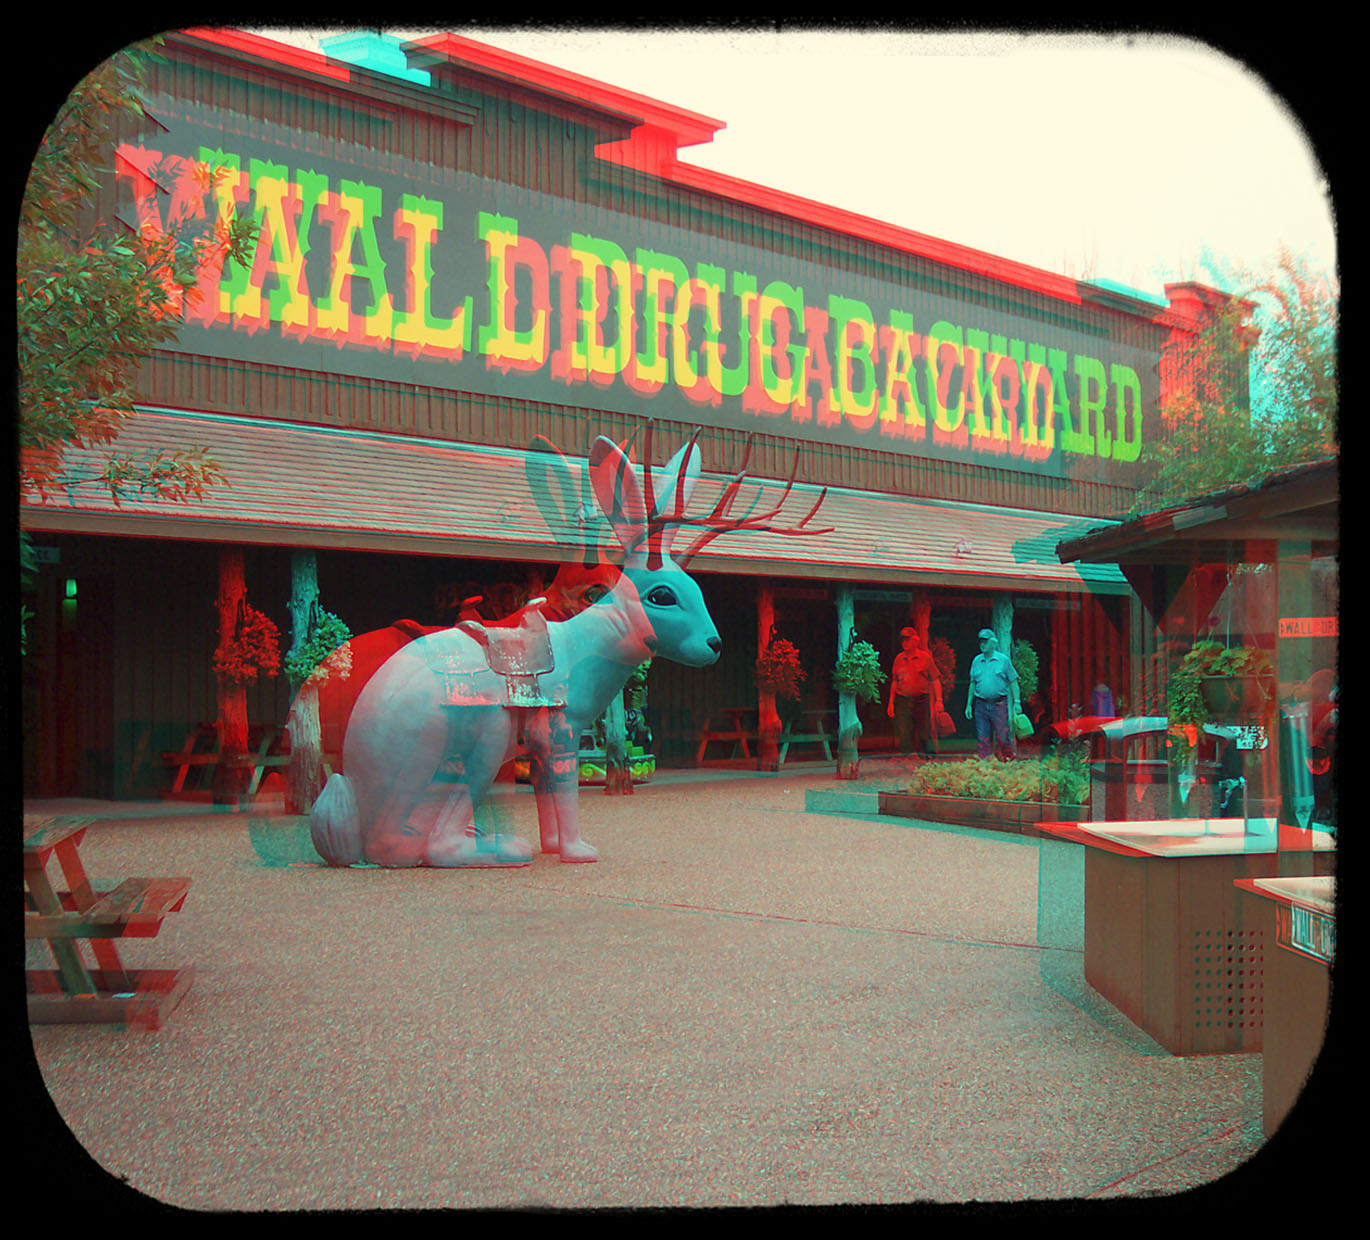 walldrugbackyardrabbit_a